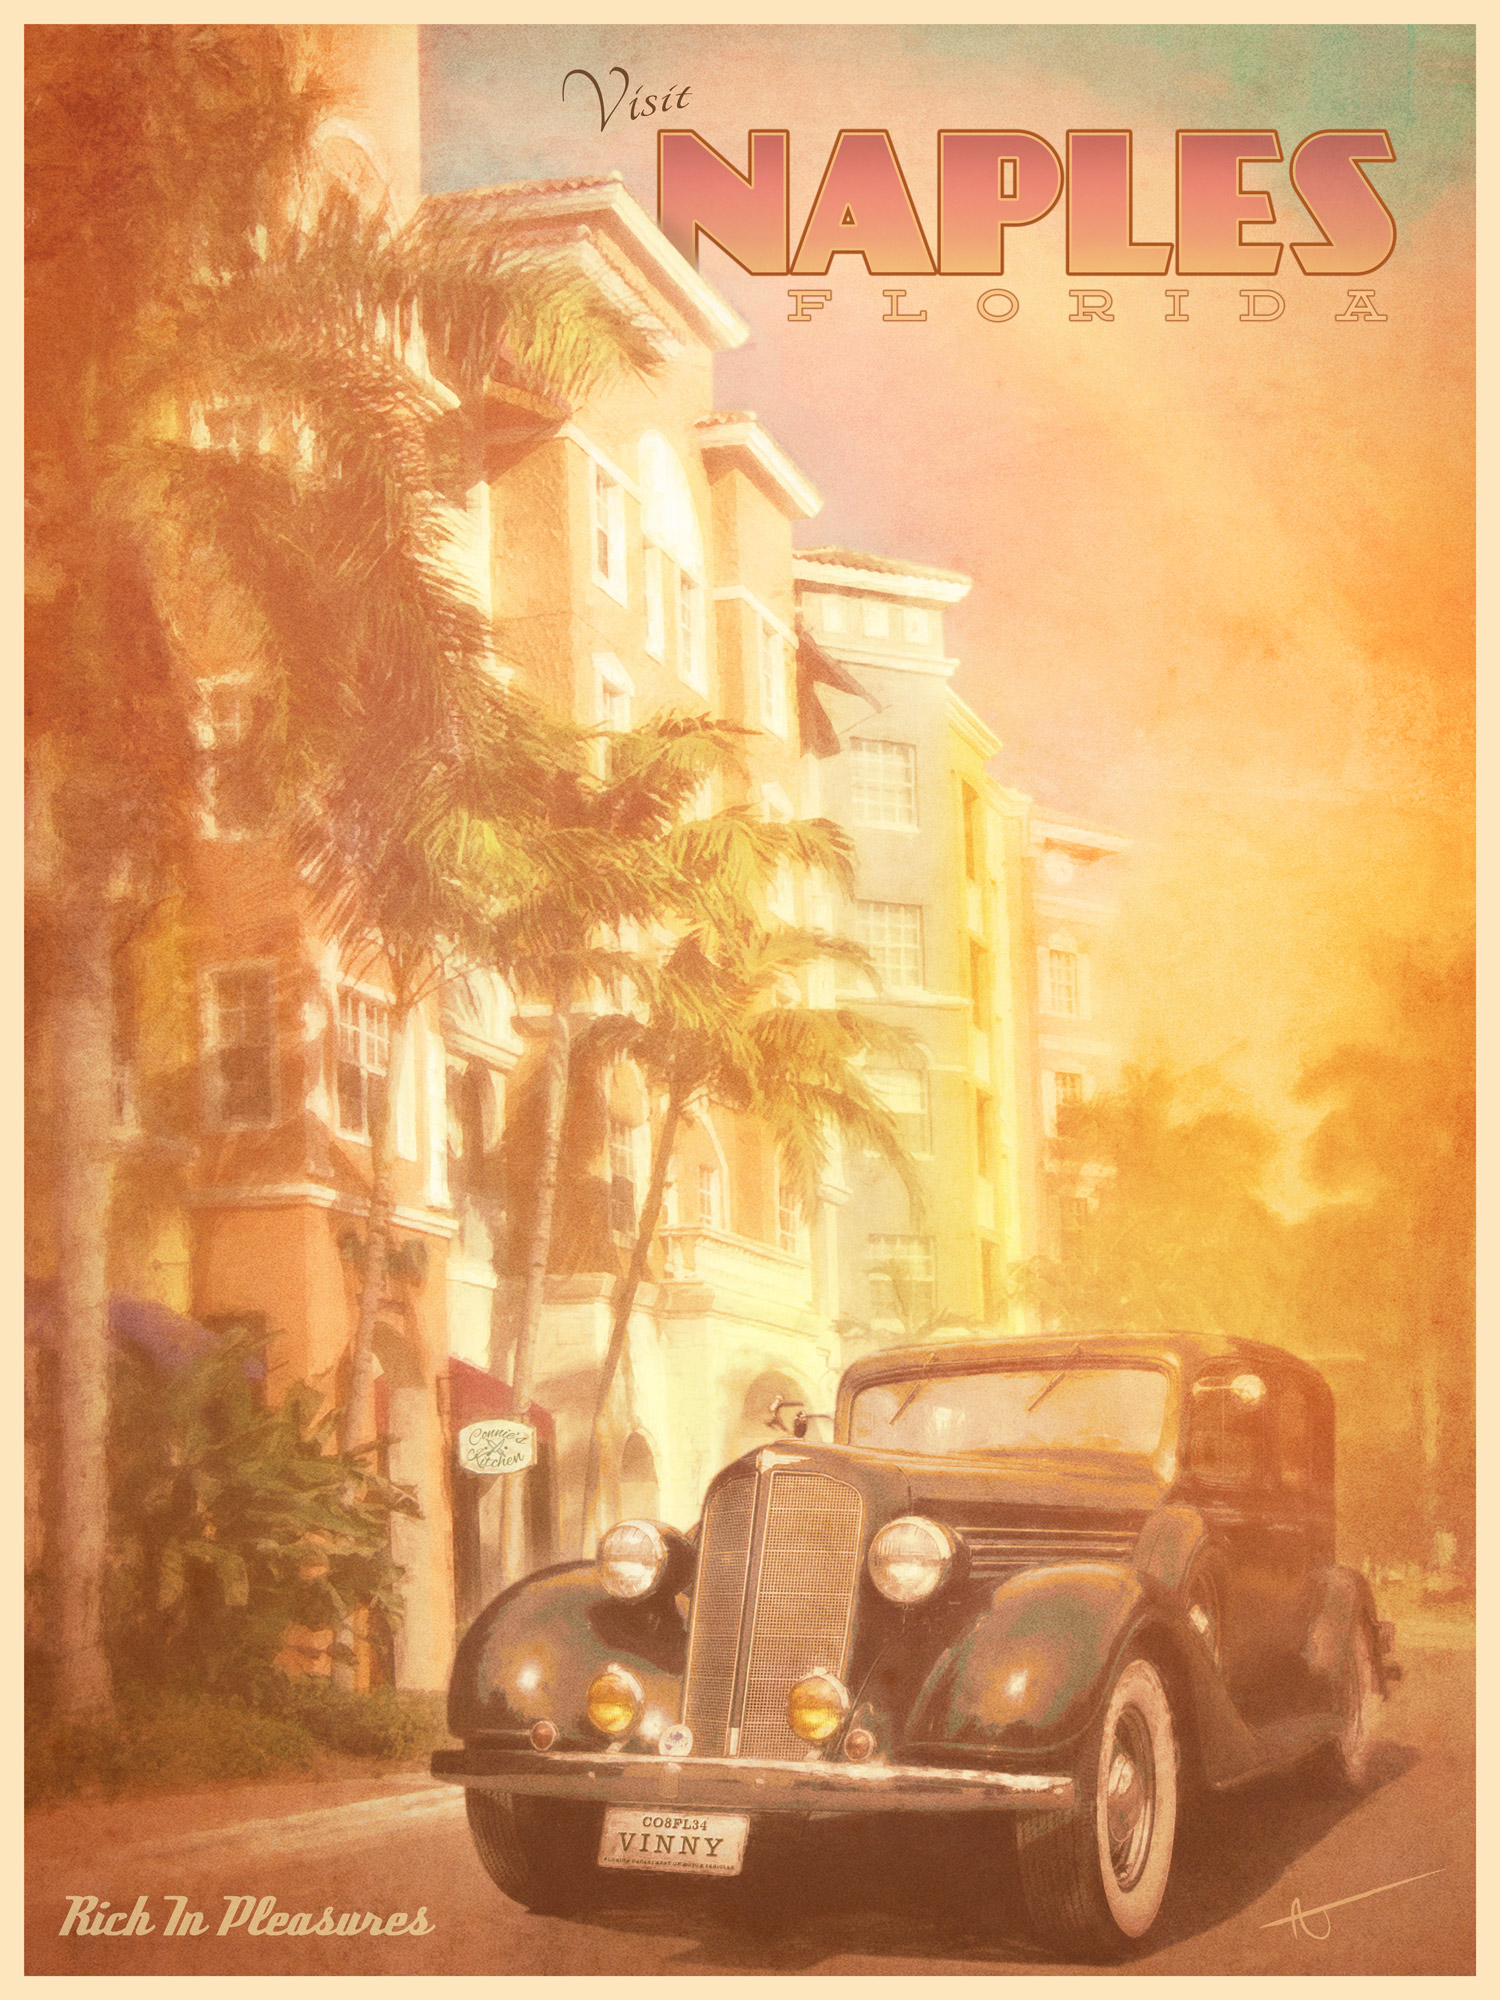 Vintage Travel Poster Series by AJ Brockman Follow